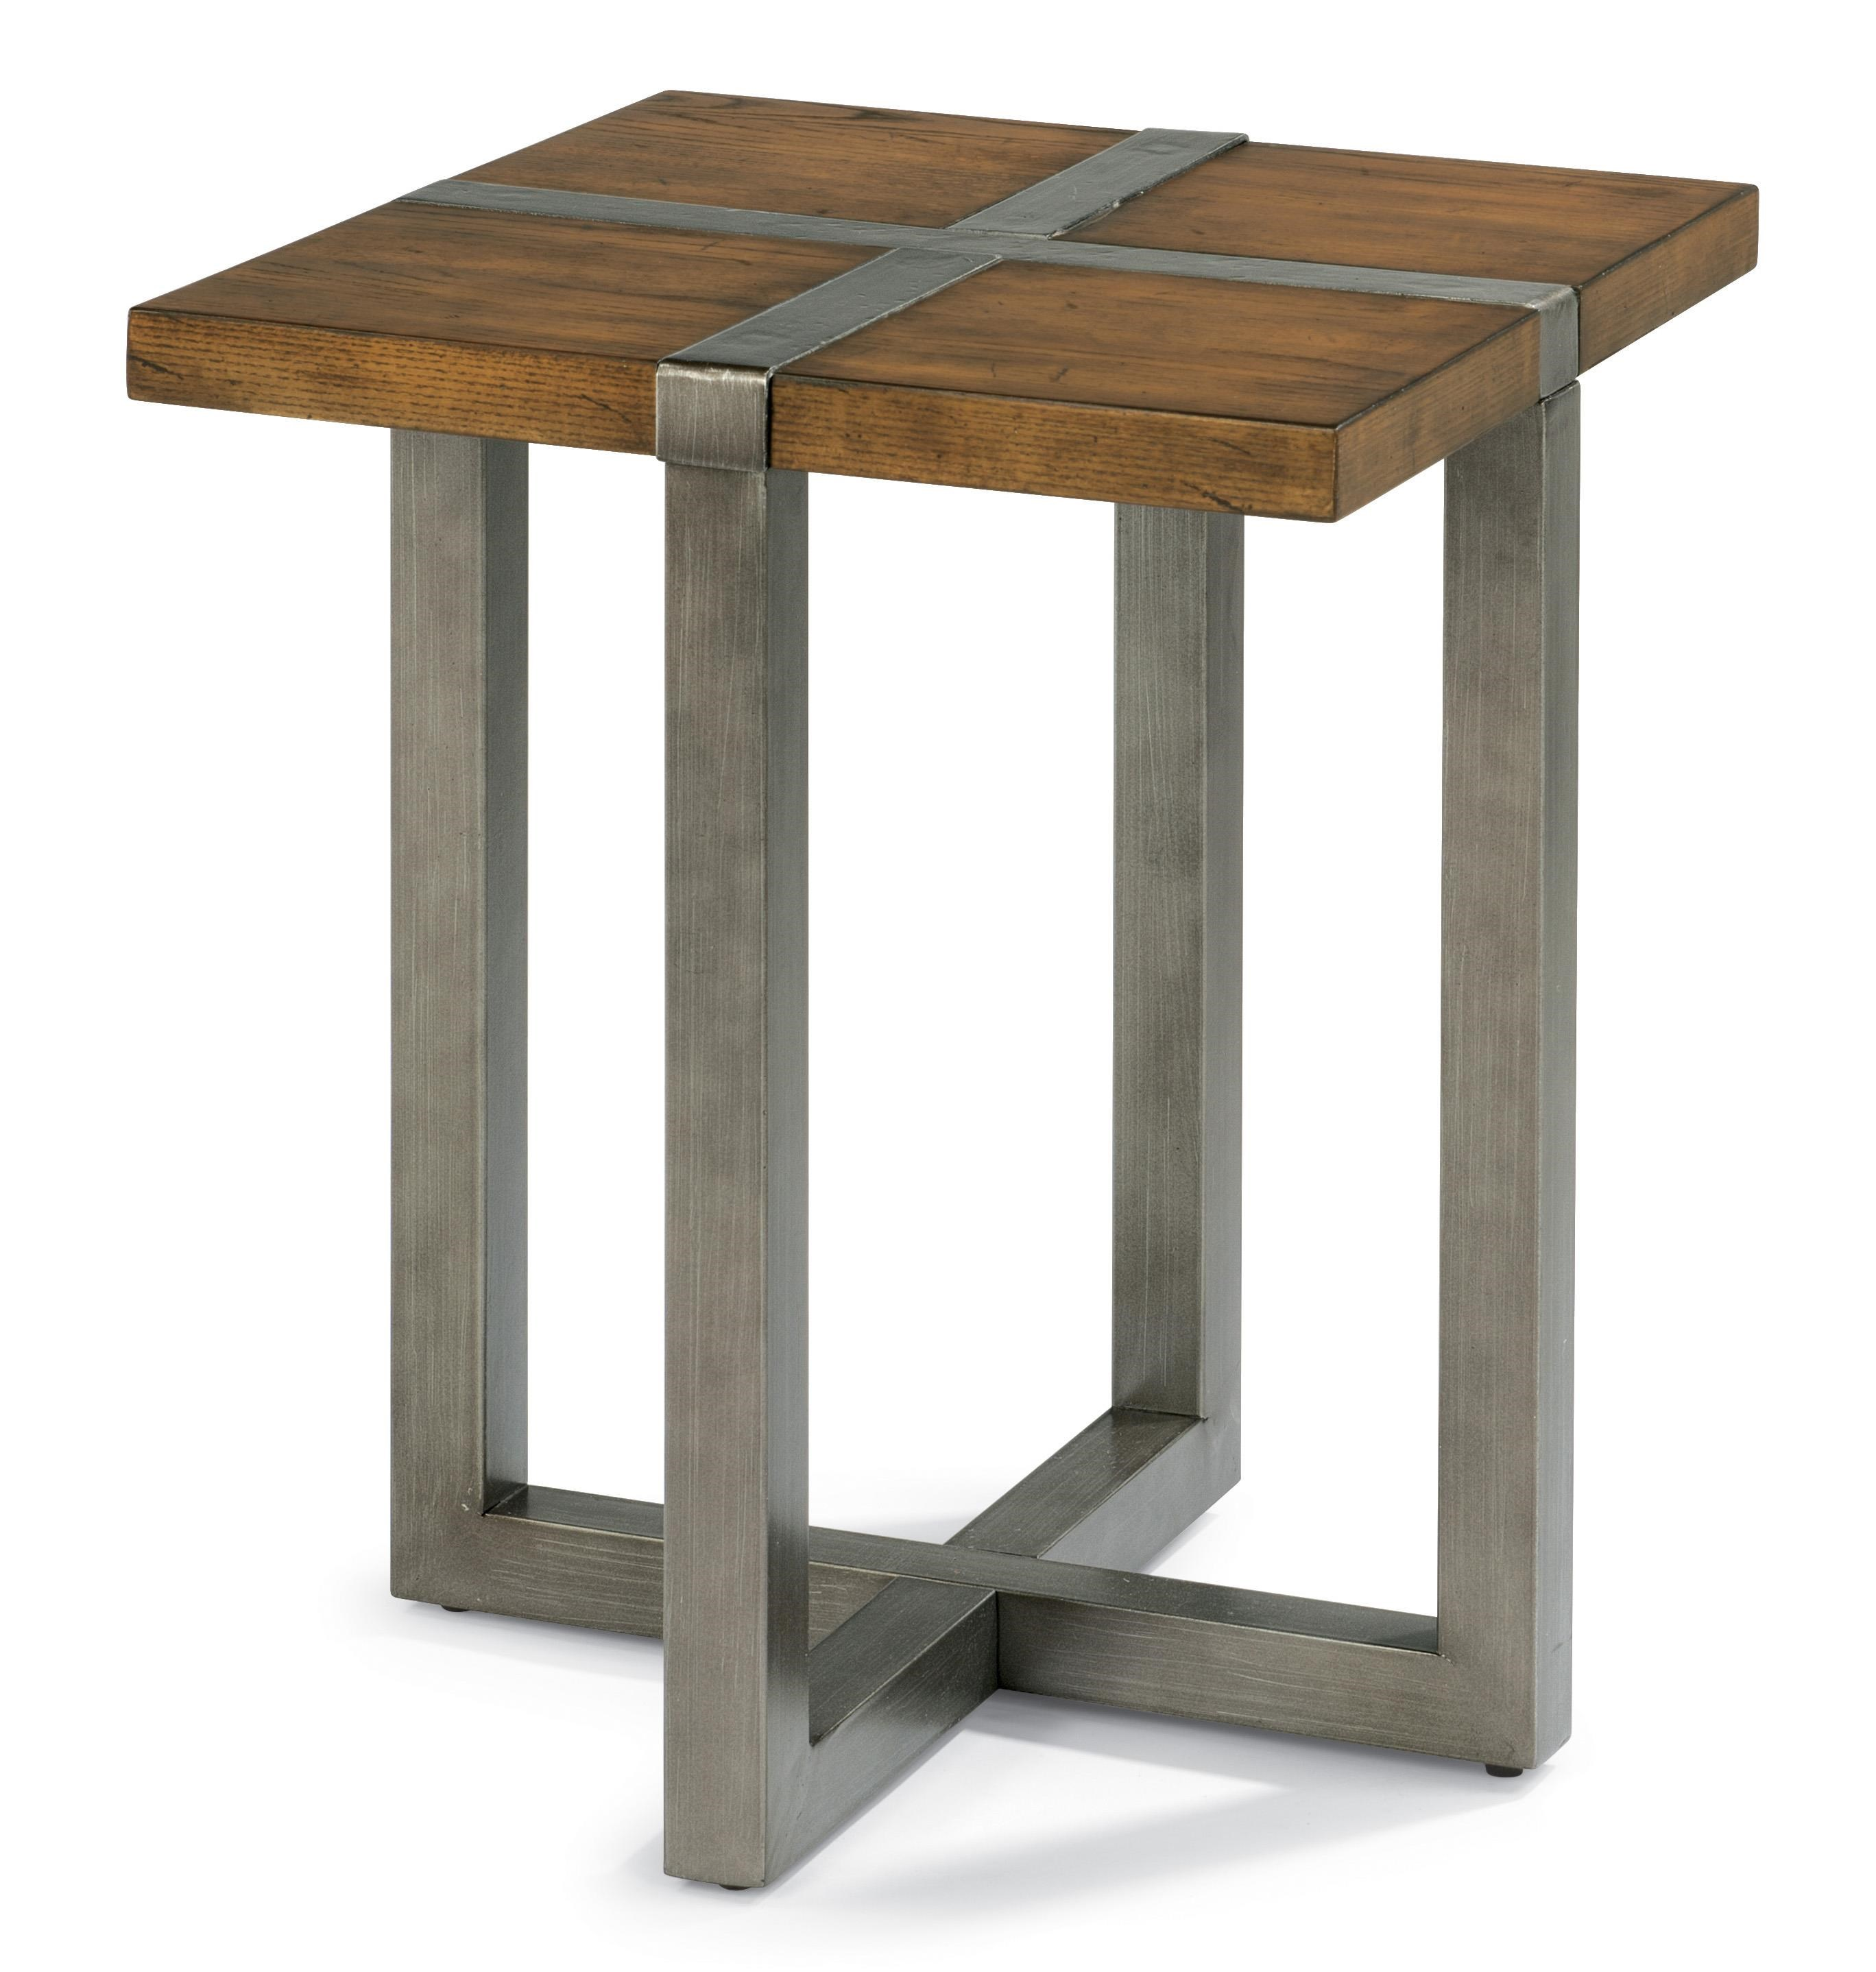 Flexsteel Trestle Rustic Chair Side Table With Aged Gunmetal Base